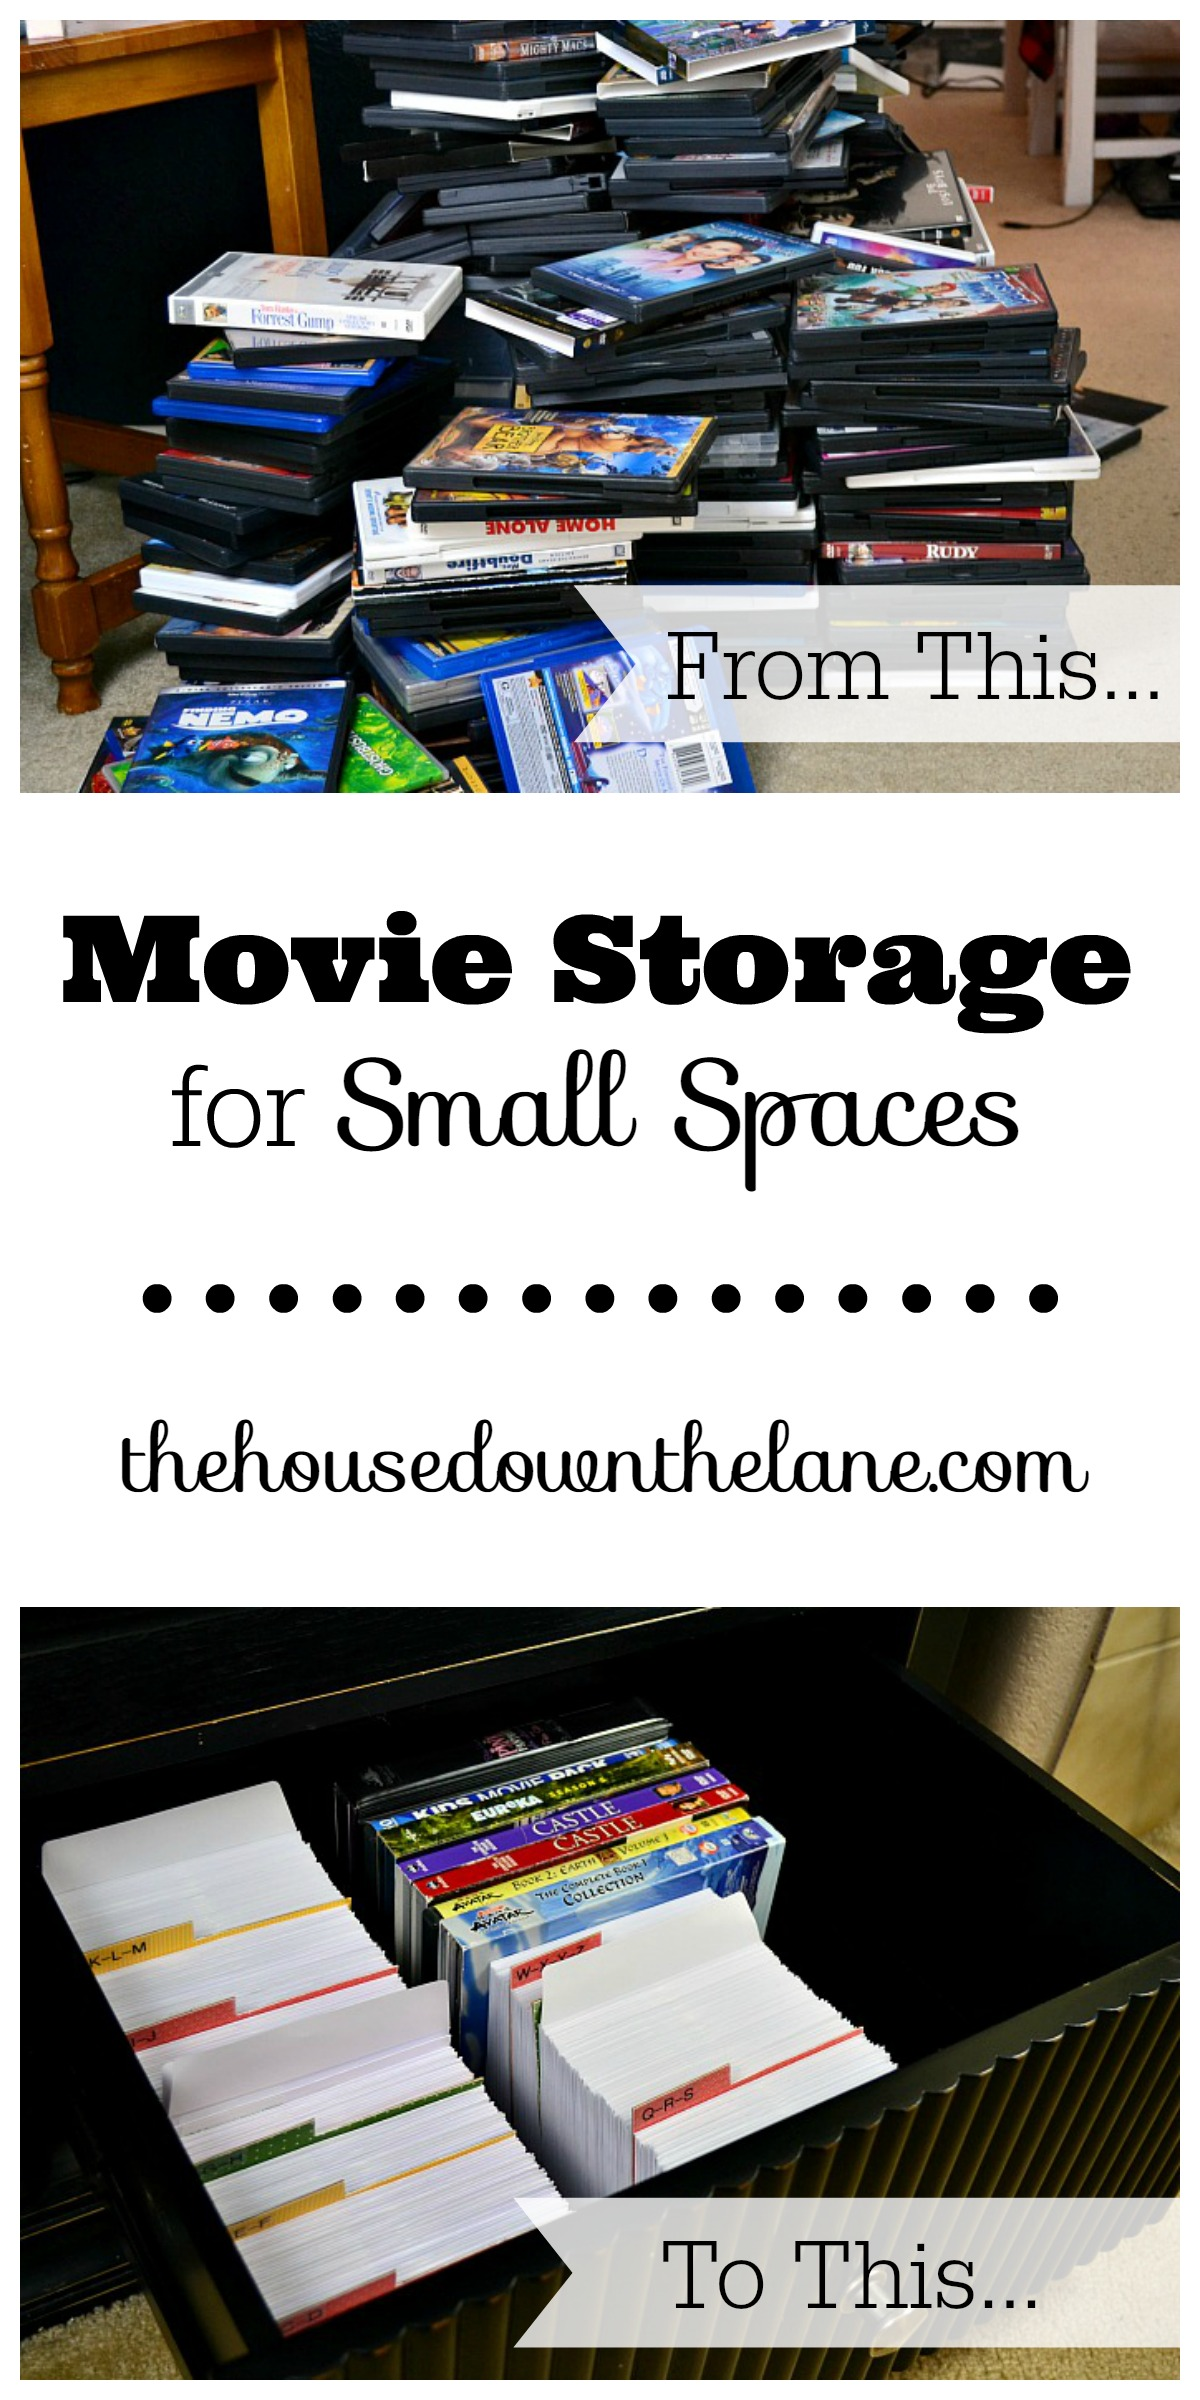 This DIY Movie Storage for Small Spaces project is a little time intensive but makes up for it in space gained! | The House Down the Lane